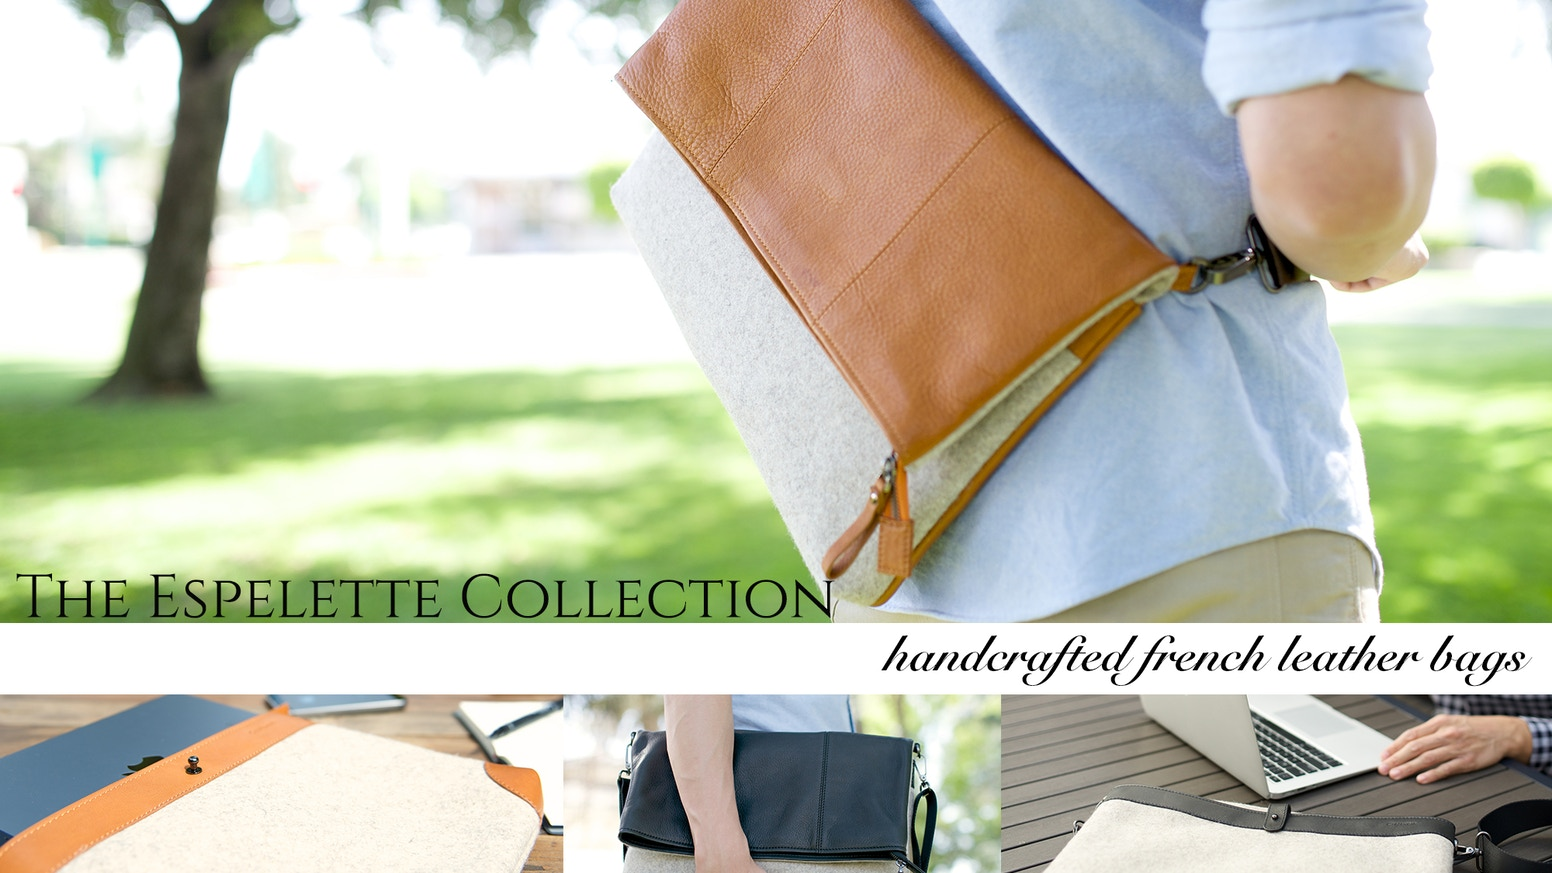 We Are Defining Craftsmanship With European Messenger Bags And Ipad Sleeves Handcrafted Premium French Leather Australian Wool